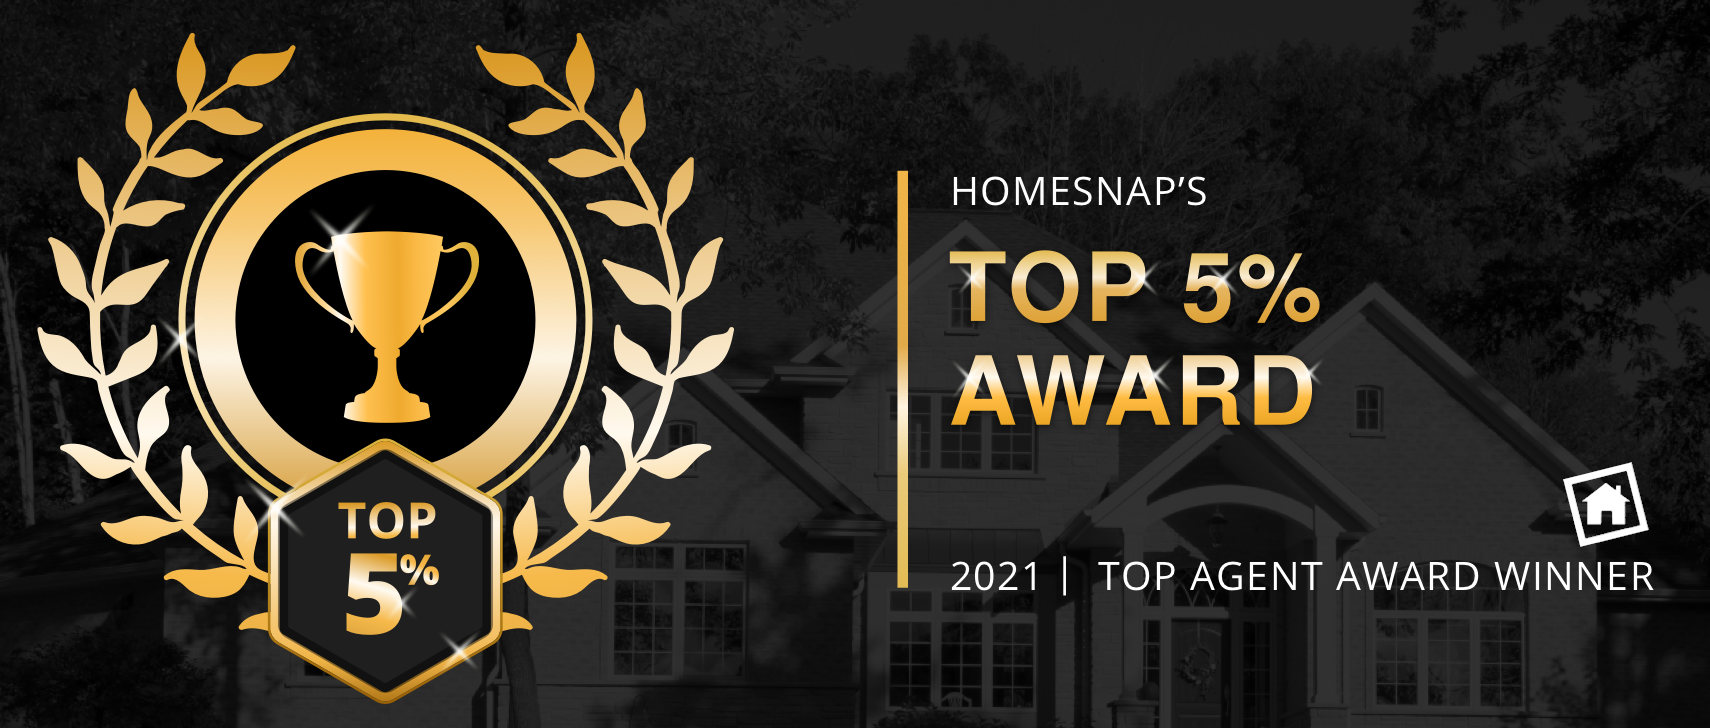 Homesnap Top 5 Percent Award